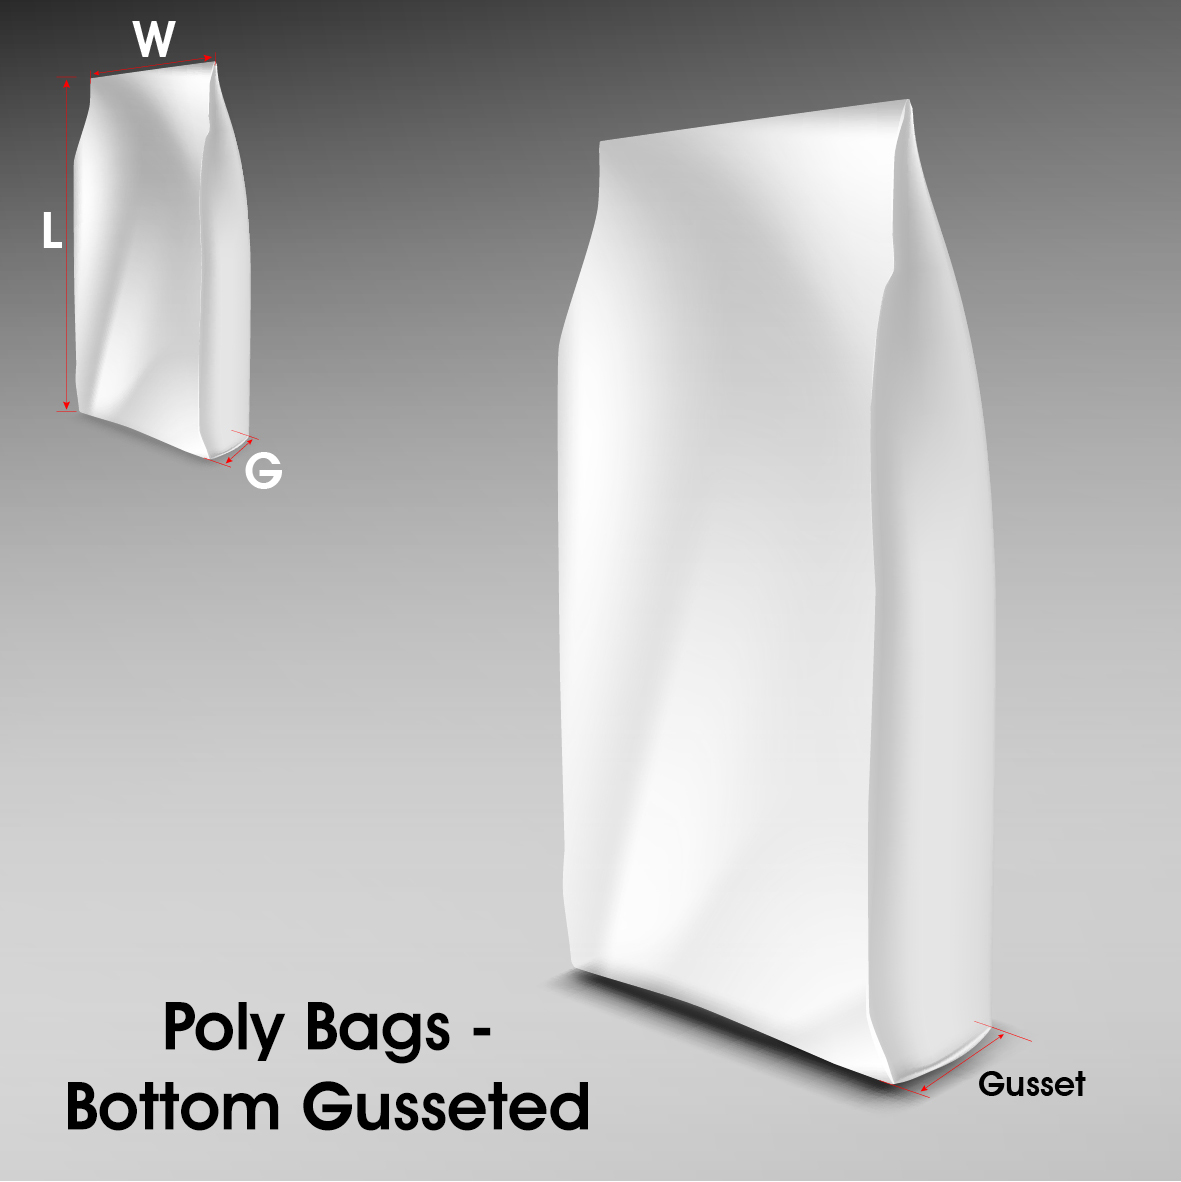 Poly Bags Bottom Gusseted